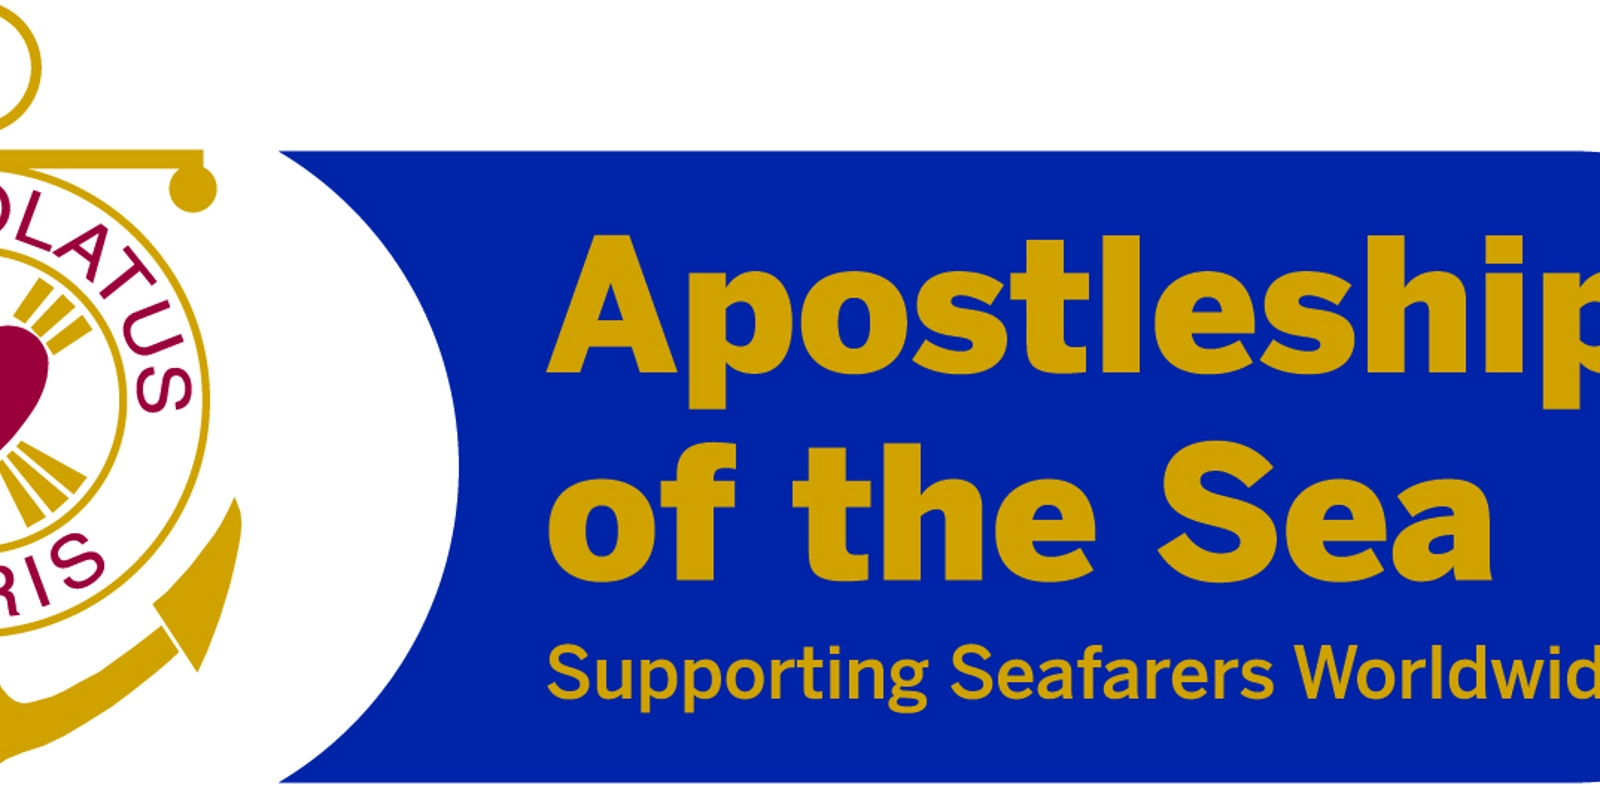 Bringing the Church to seafarers